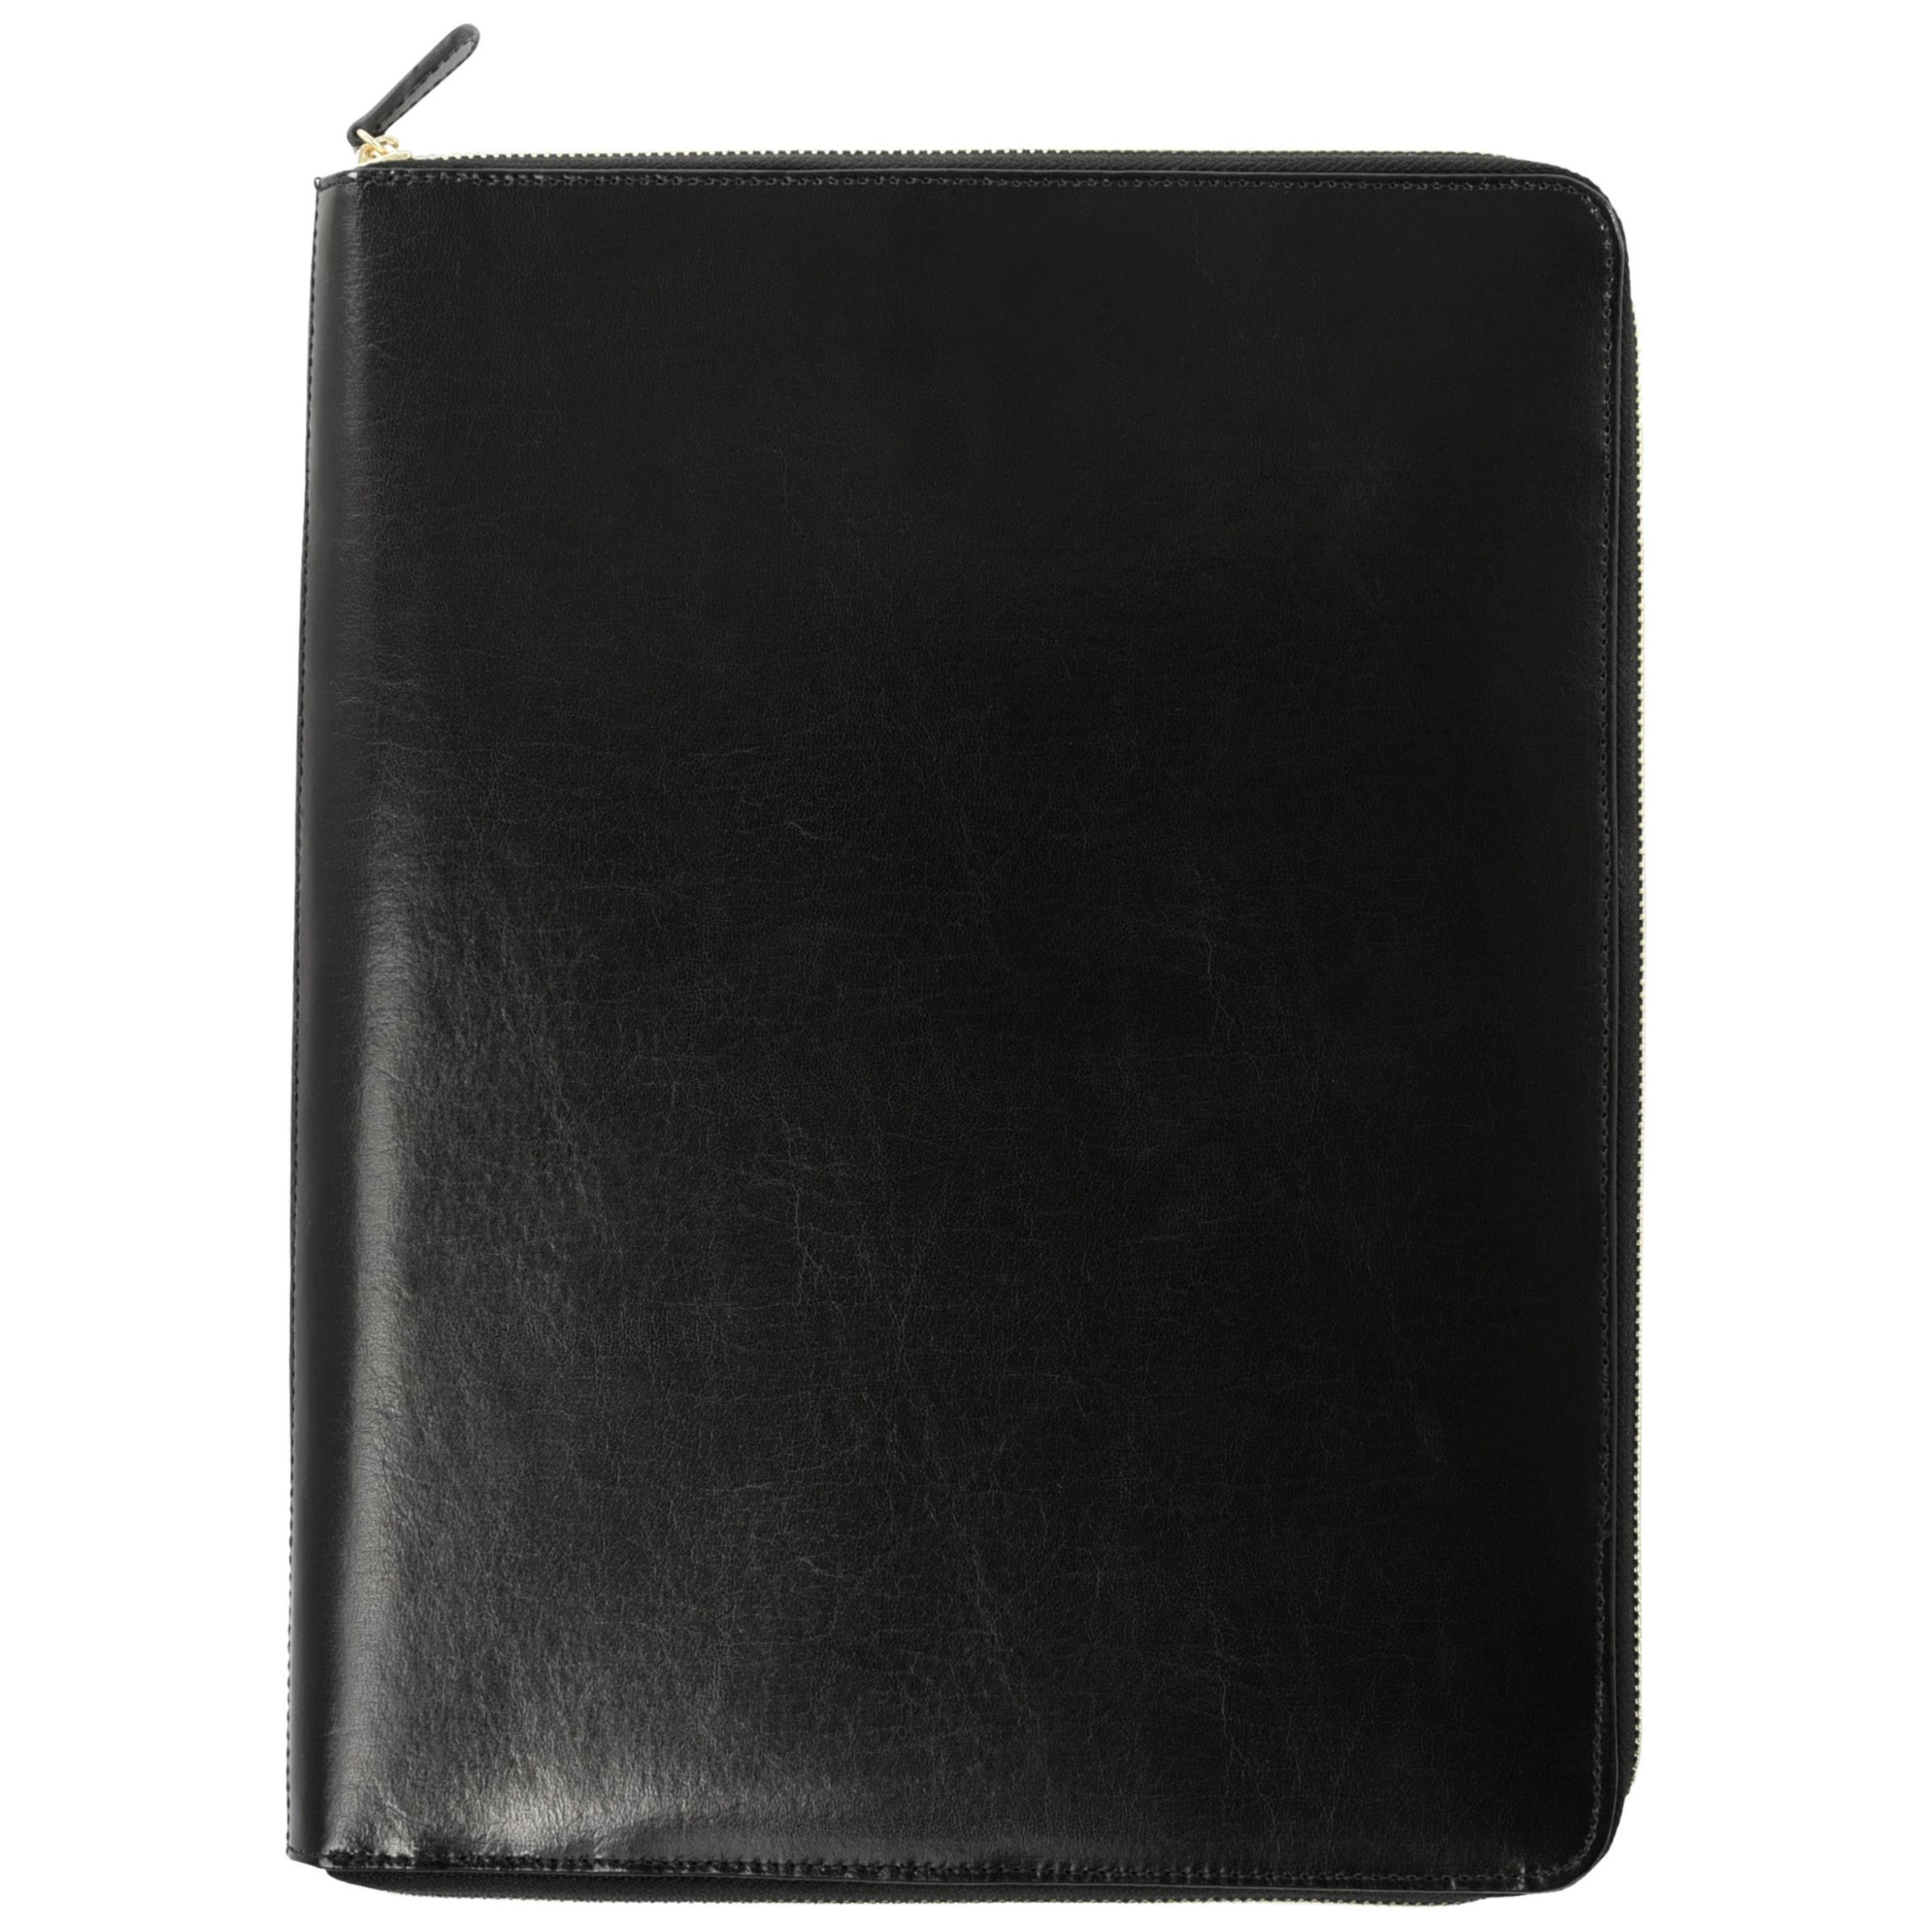 Dulwich Designs Dulwich Designs Leather Windsor Document Folder